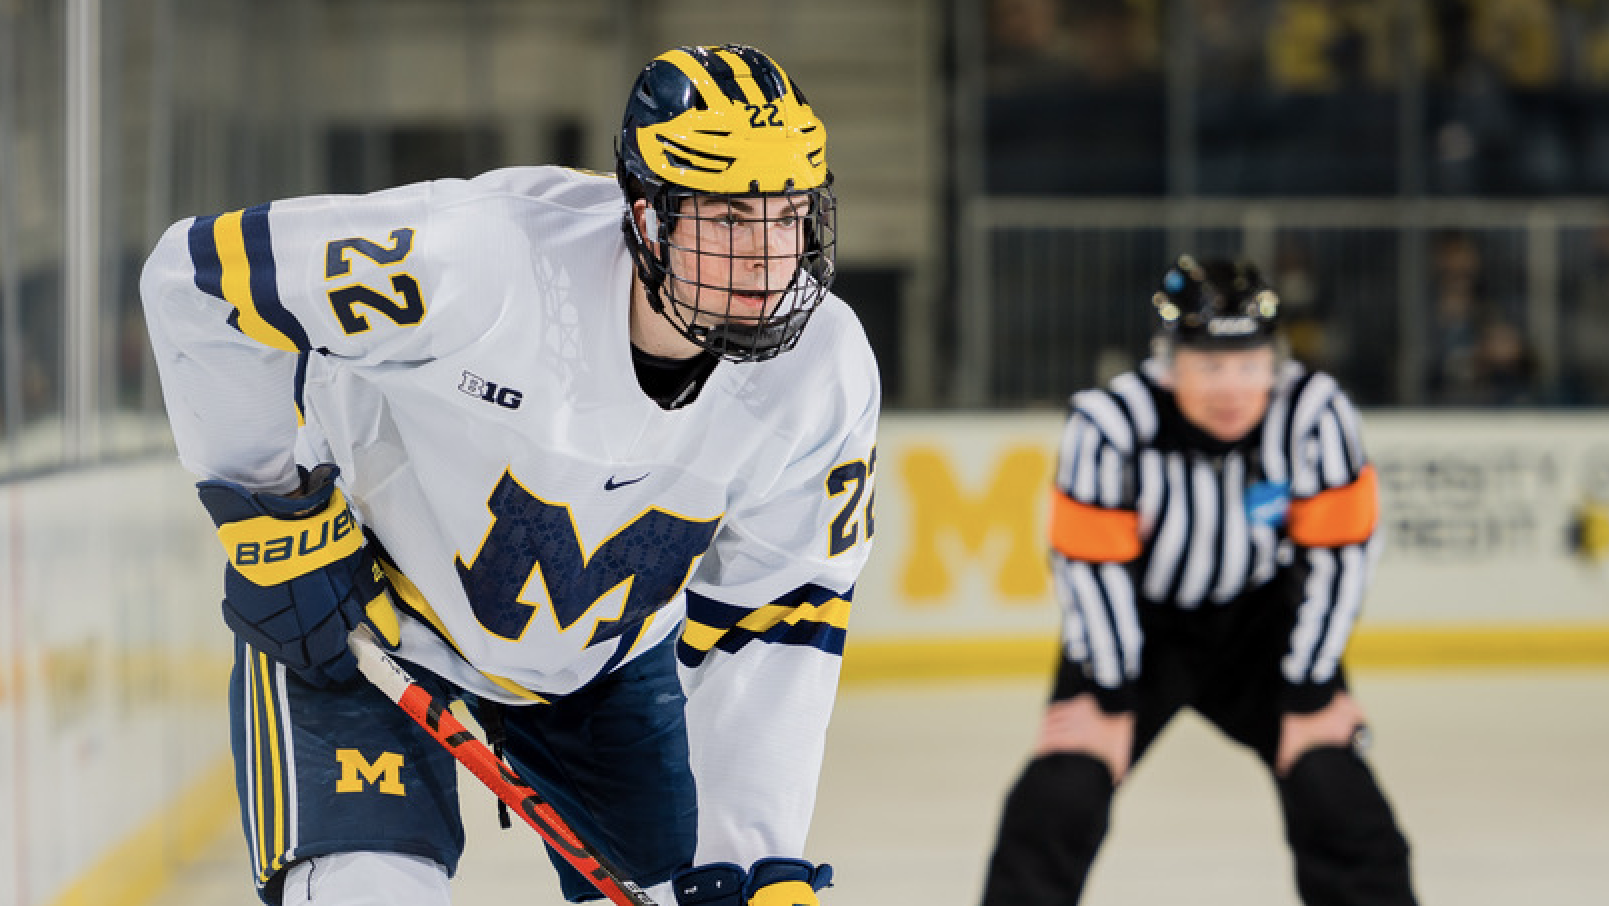 Wolverines defenseman Owen Power lines up for a faceoff during a 9-0 win over the Spartans at York Arena on Friday.